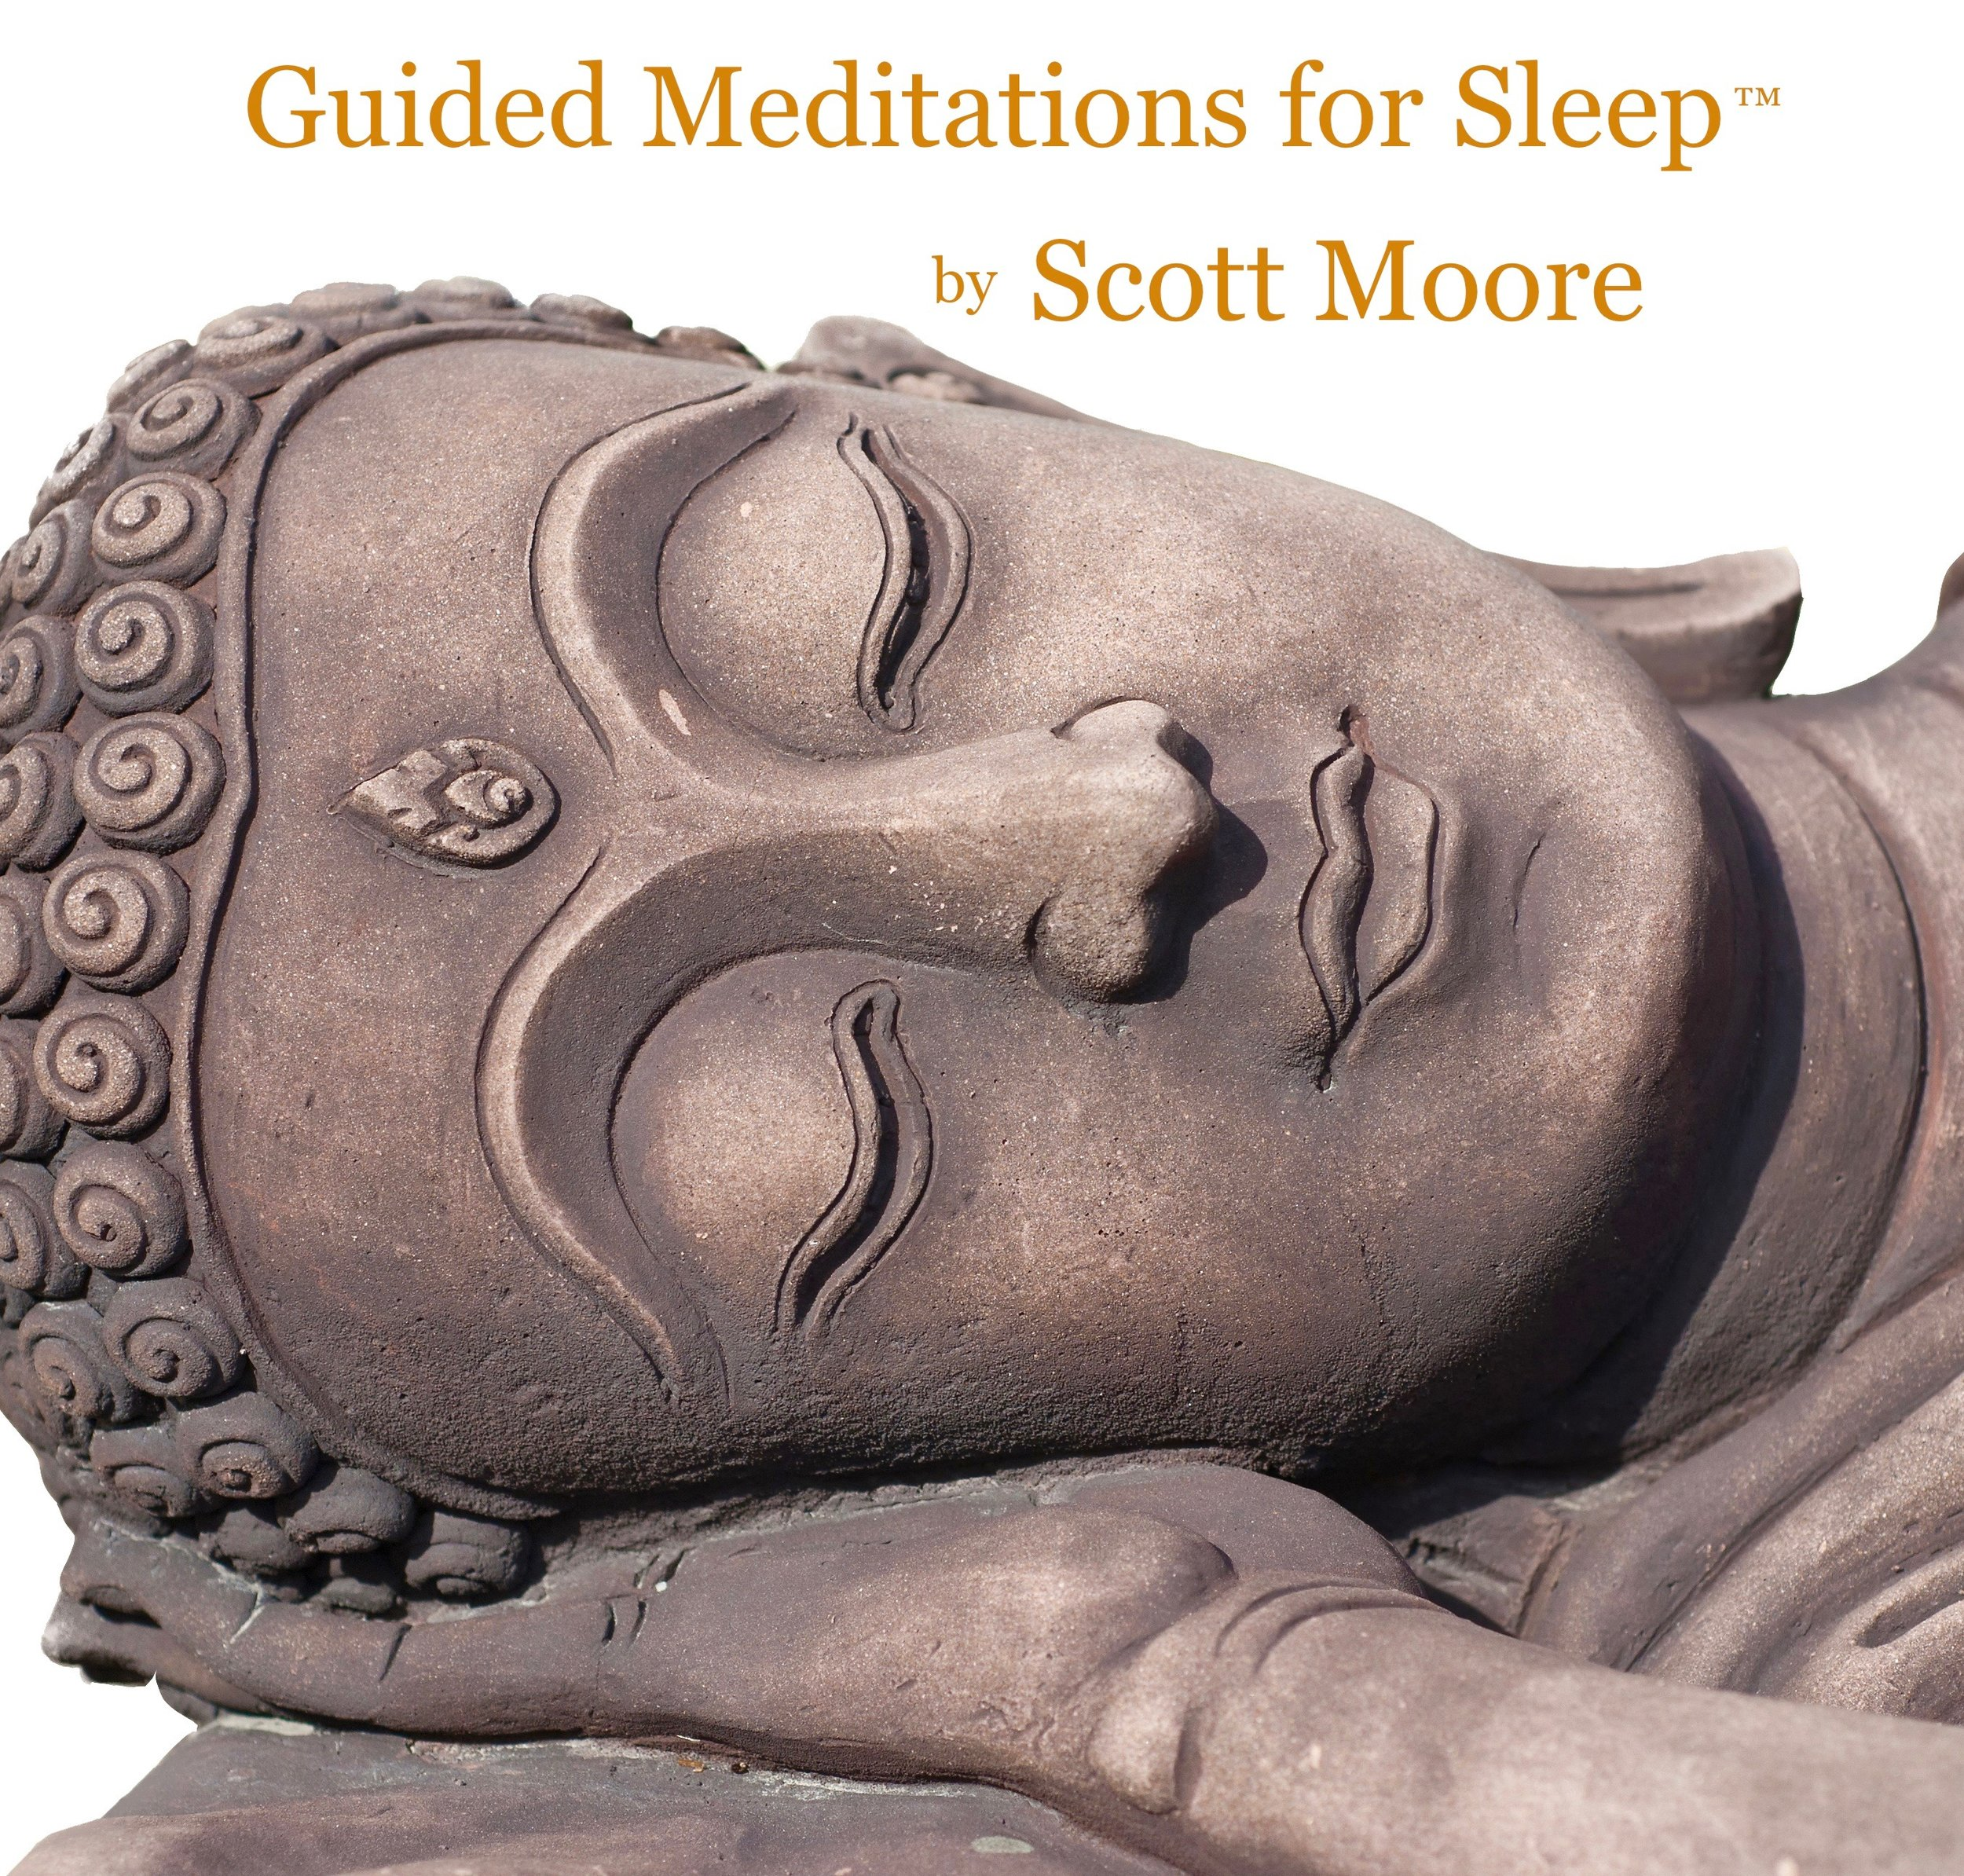 Guided Meditations for Sleep.JPG